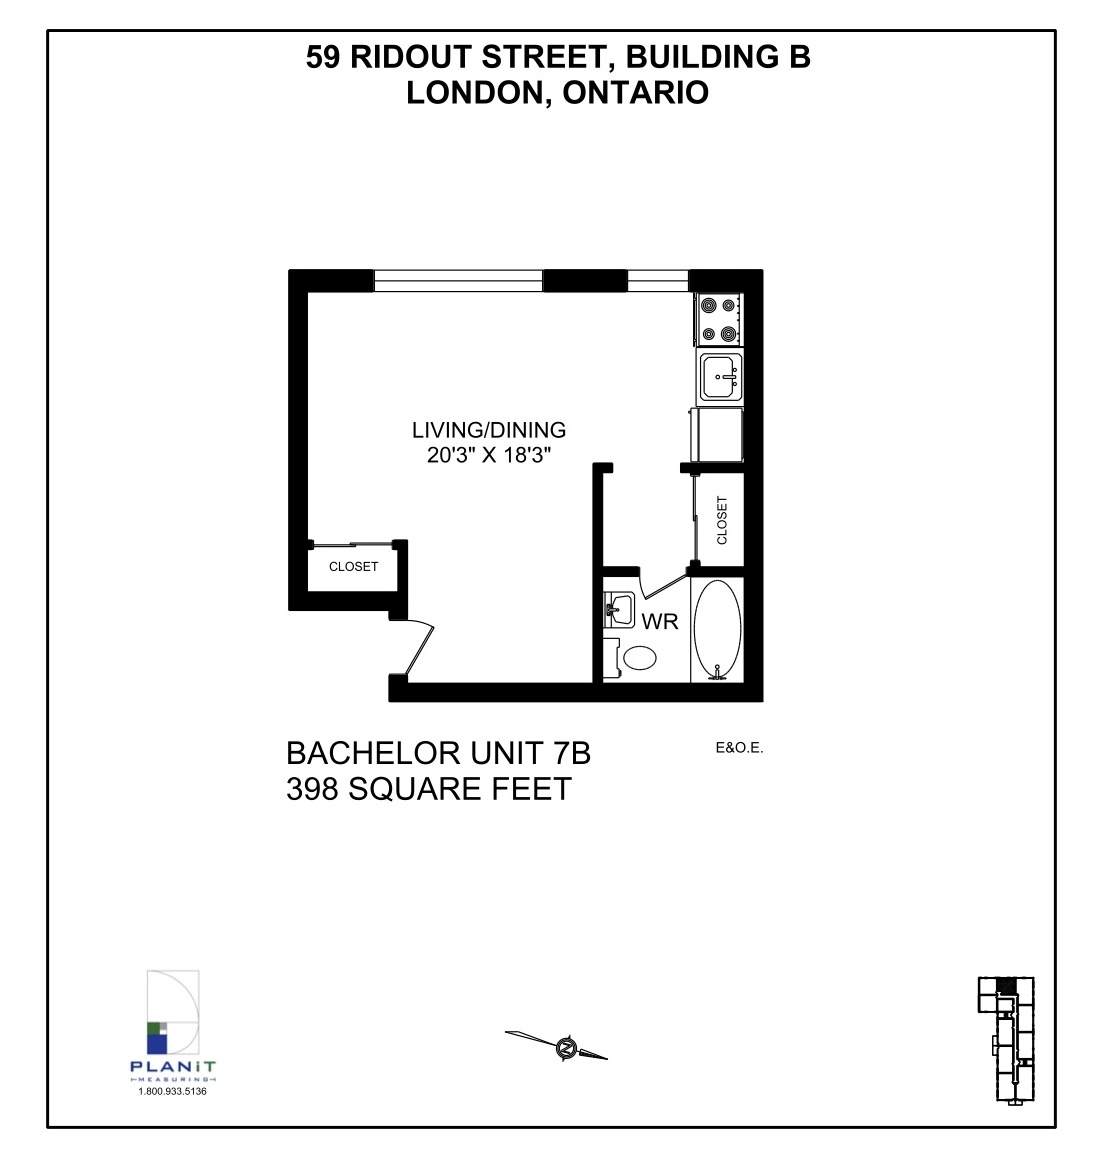 Apartments For Rent In London, Ontario